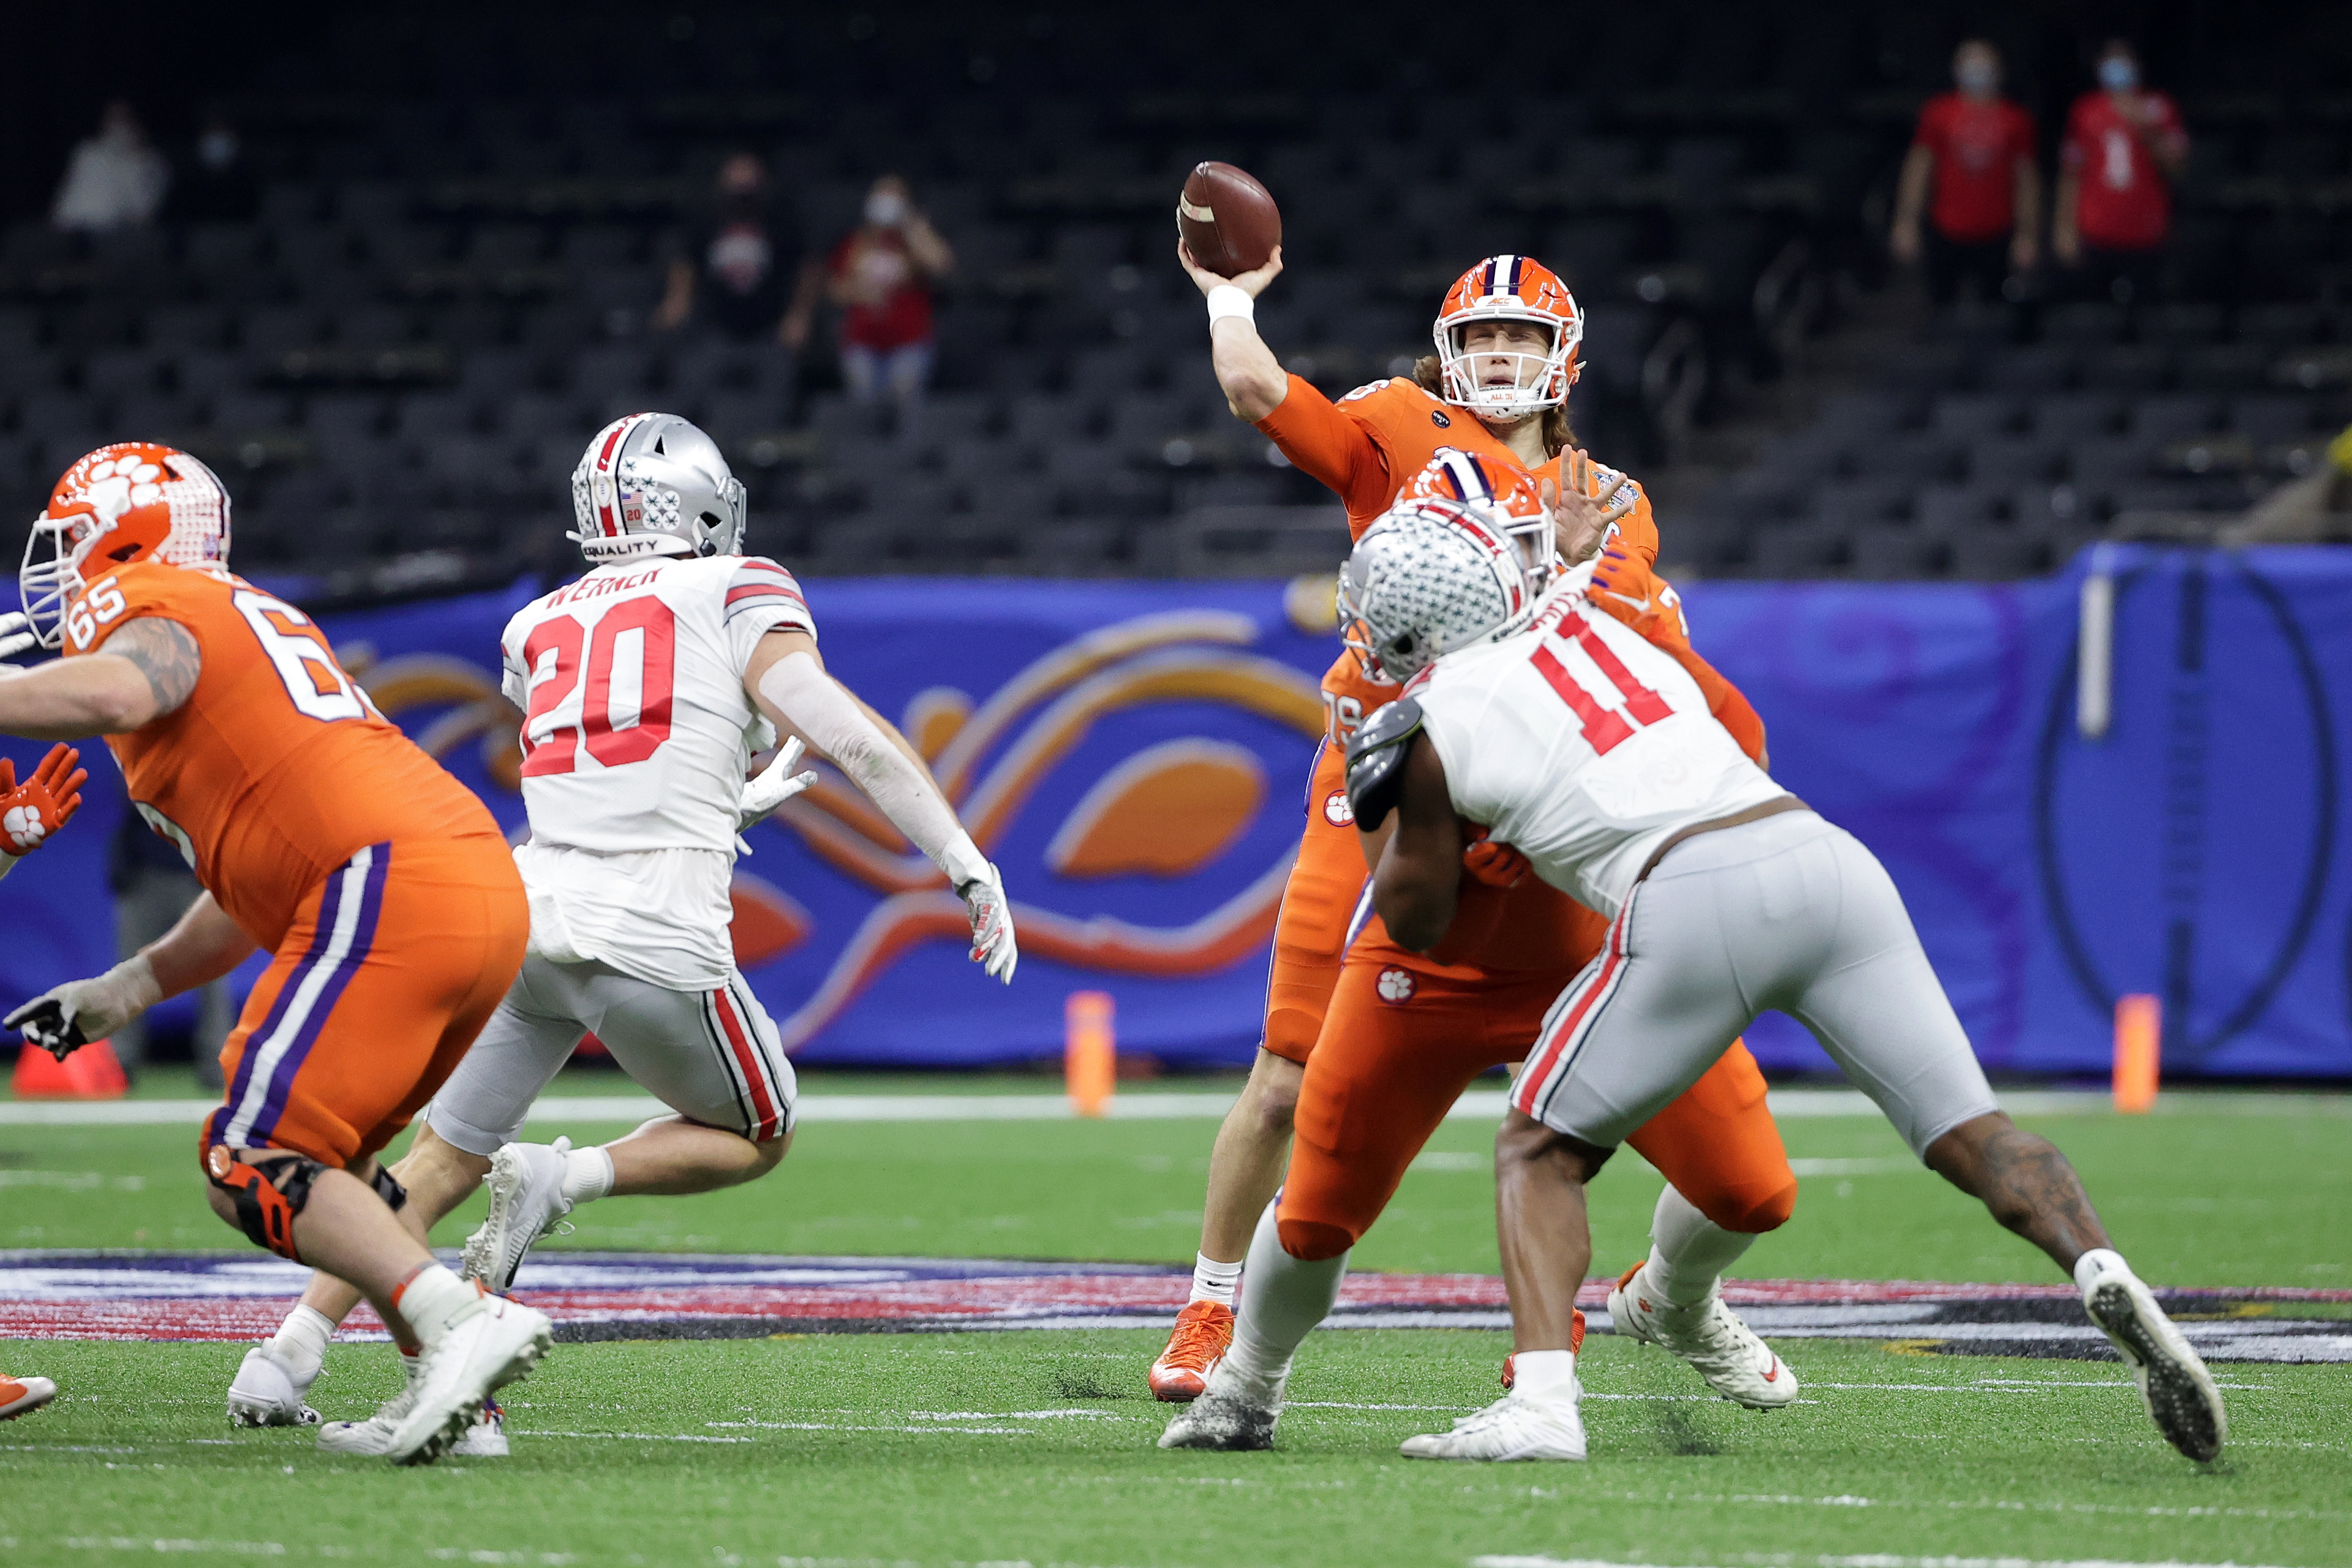 Jan 1, 2021; New Orleans, LA, USA; Clemson Tigers quarterback Trevor Lawrence (16) attempts a pass against the Ohio State Buckeyes during the first half at Mercedes-Benz Superdome. Mandatory Credit: Derick E. Hingle-USA TODAY Sports